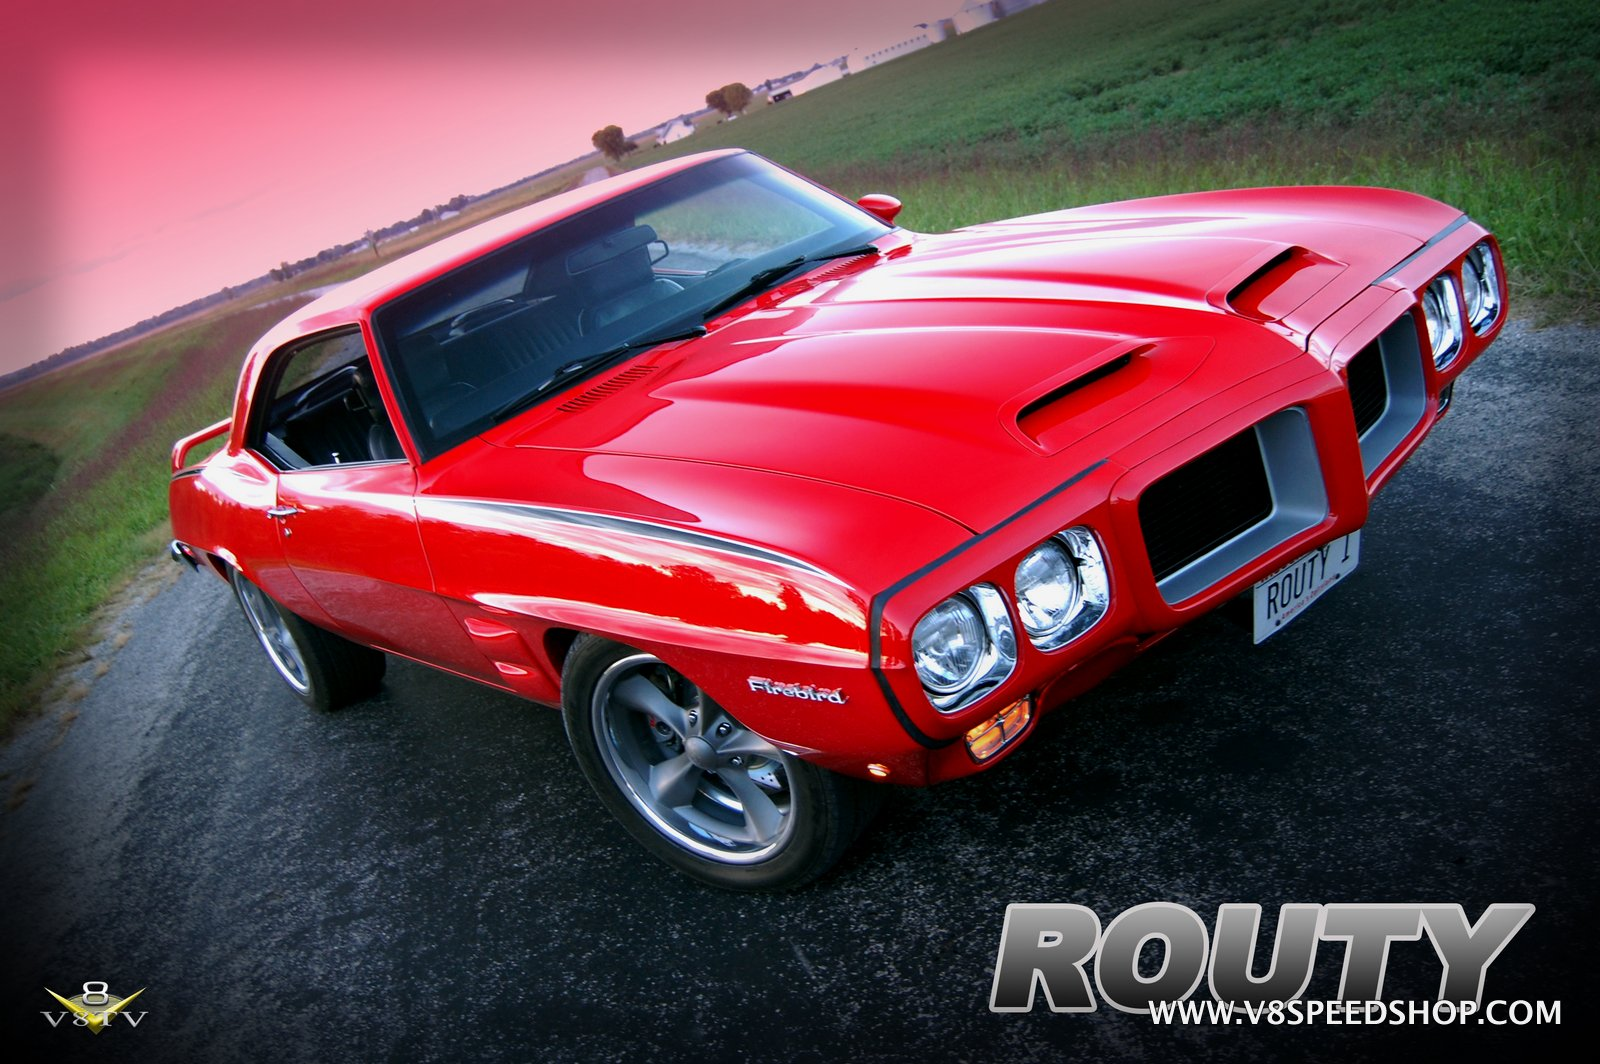 "1969 Pontiac Firebird ""Routy"" Restoration at V8 Speed & Resto Shop"